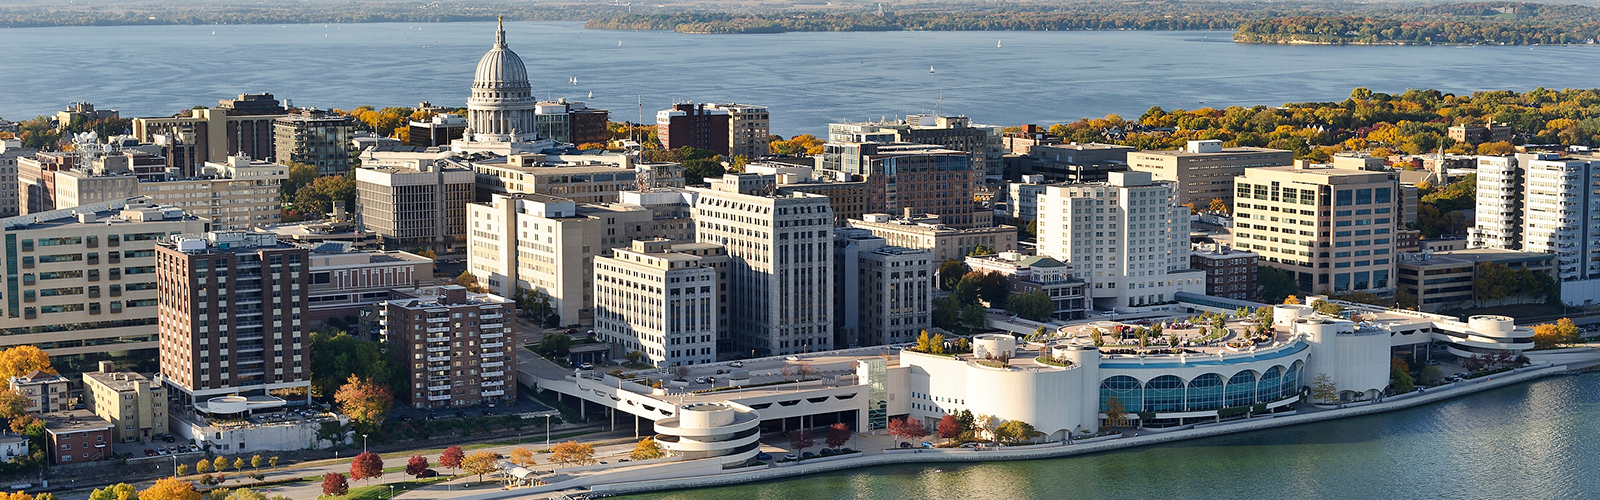 aerial photo of downtown Madison, WI.